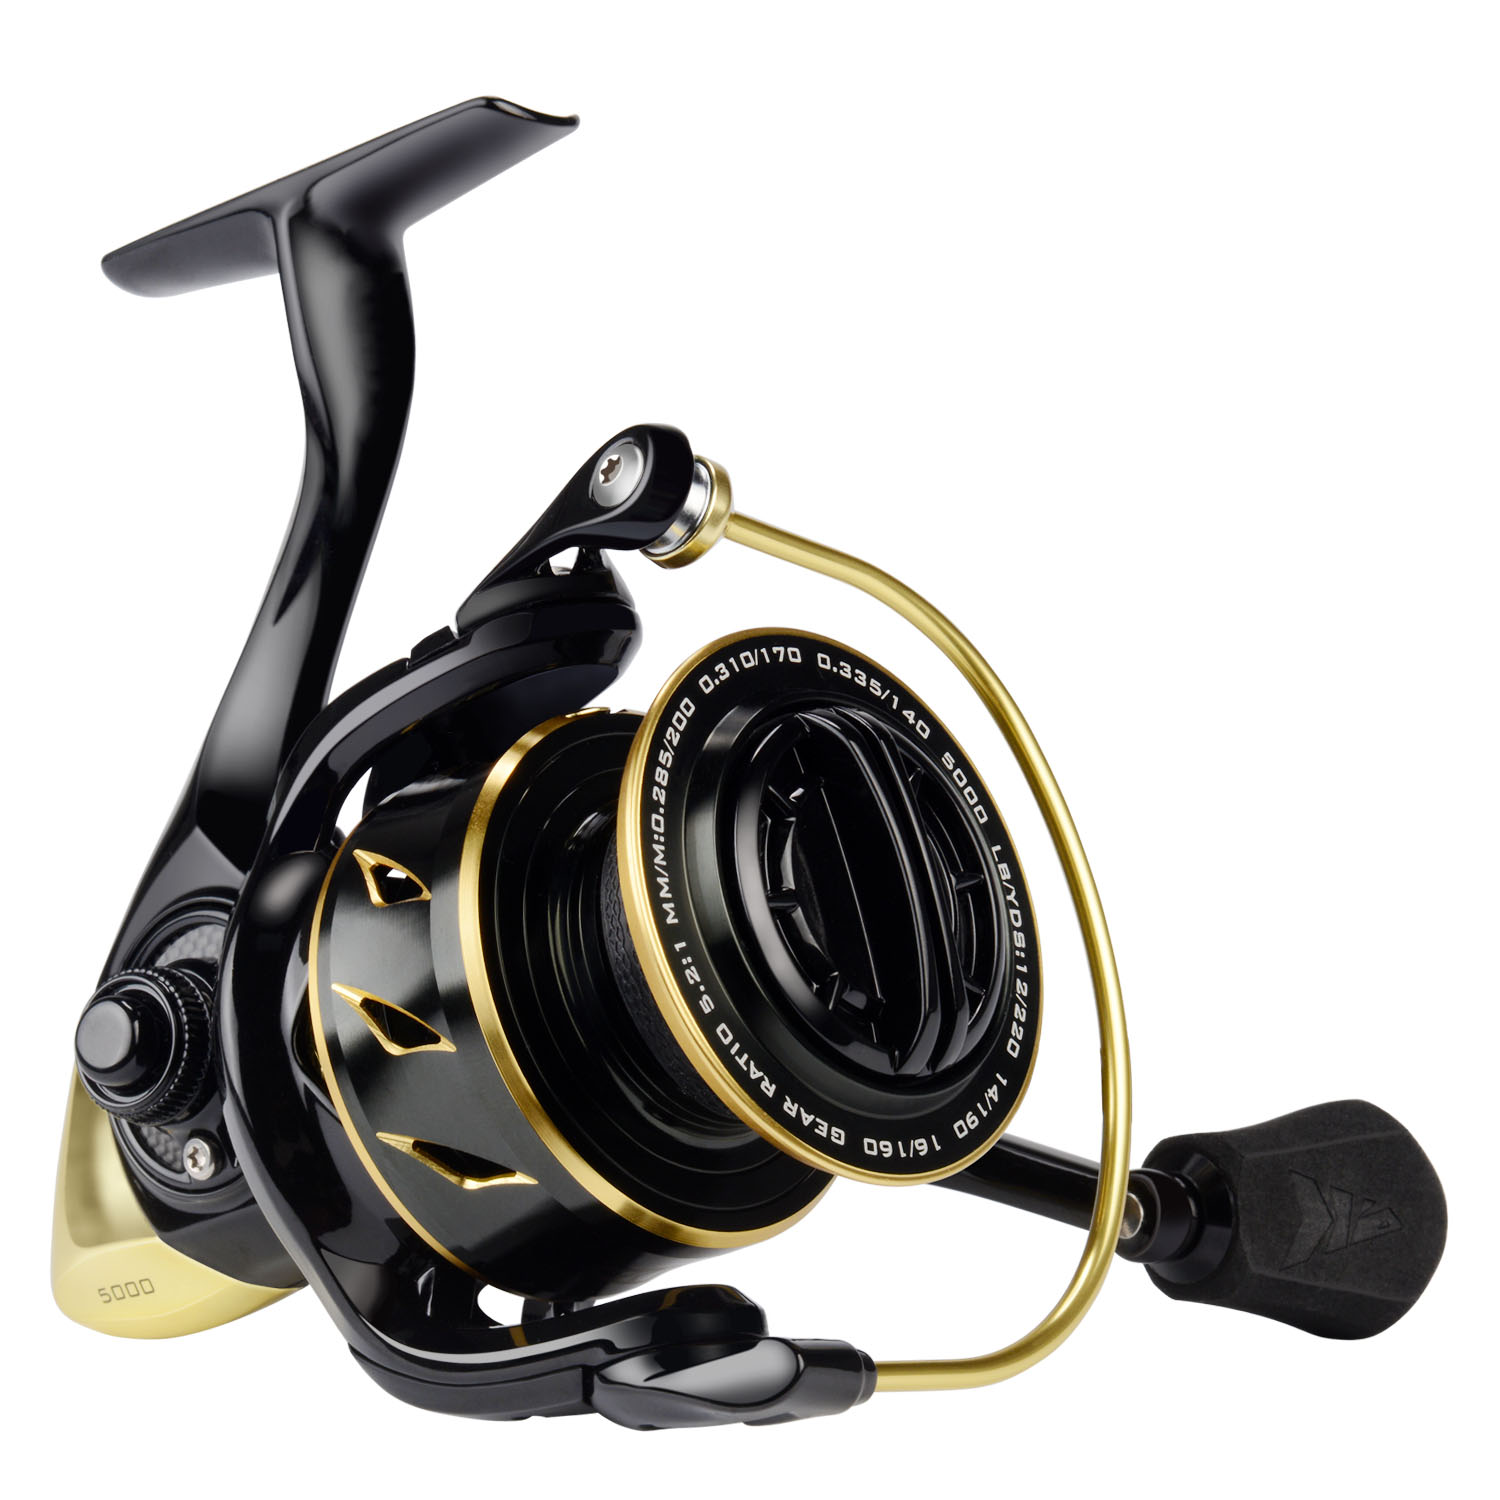 KastKing New 2018 Sharky III Gold Spinning Reel